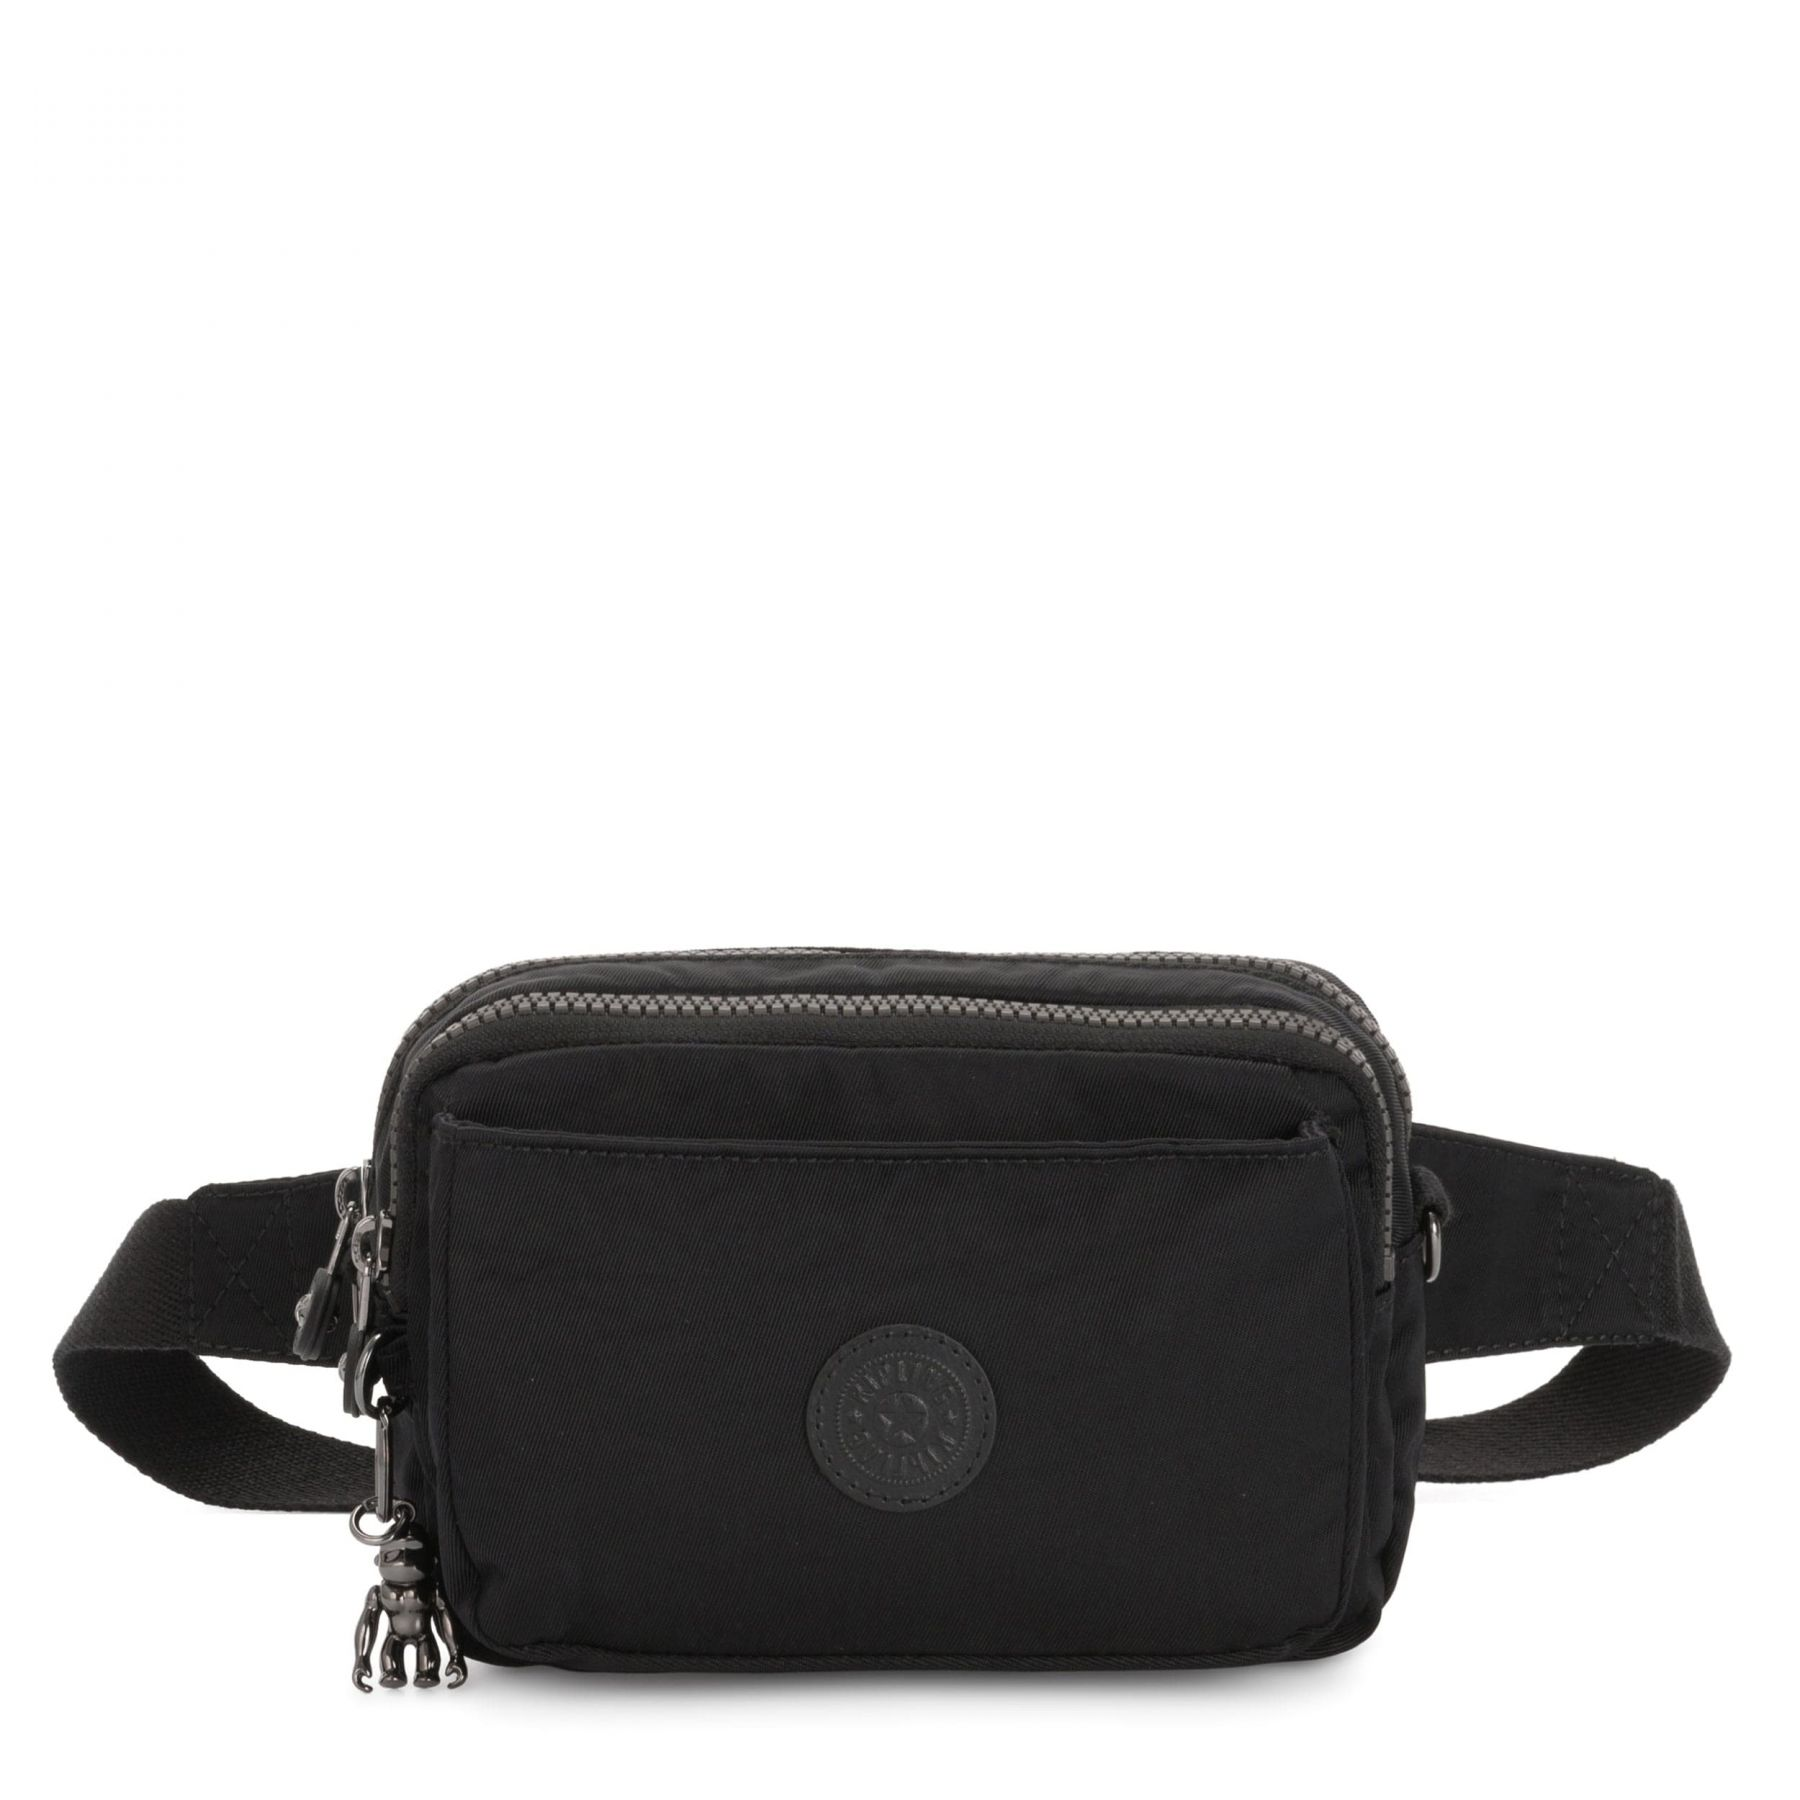 ABANU MULTI Latest Shoulder Bags by Kipling - Front view